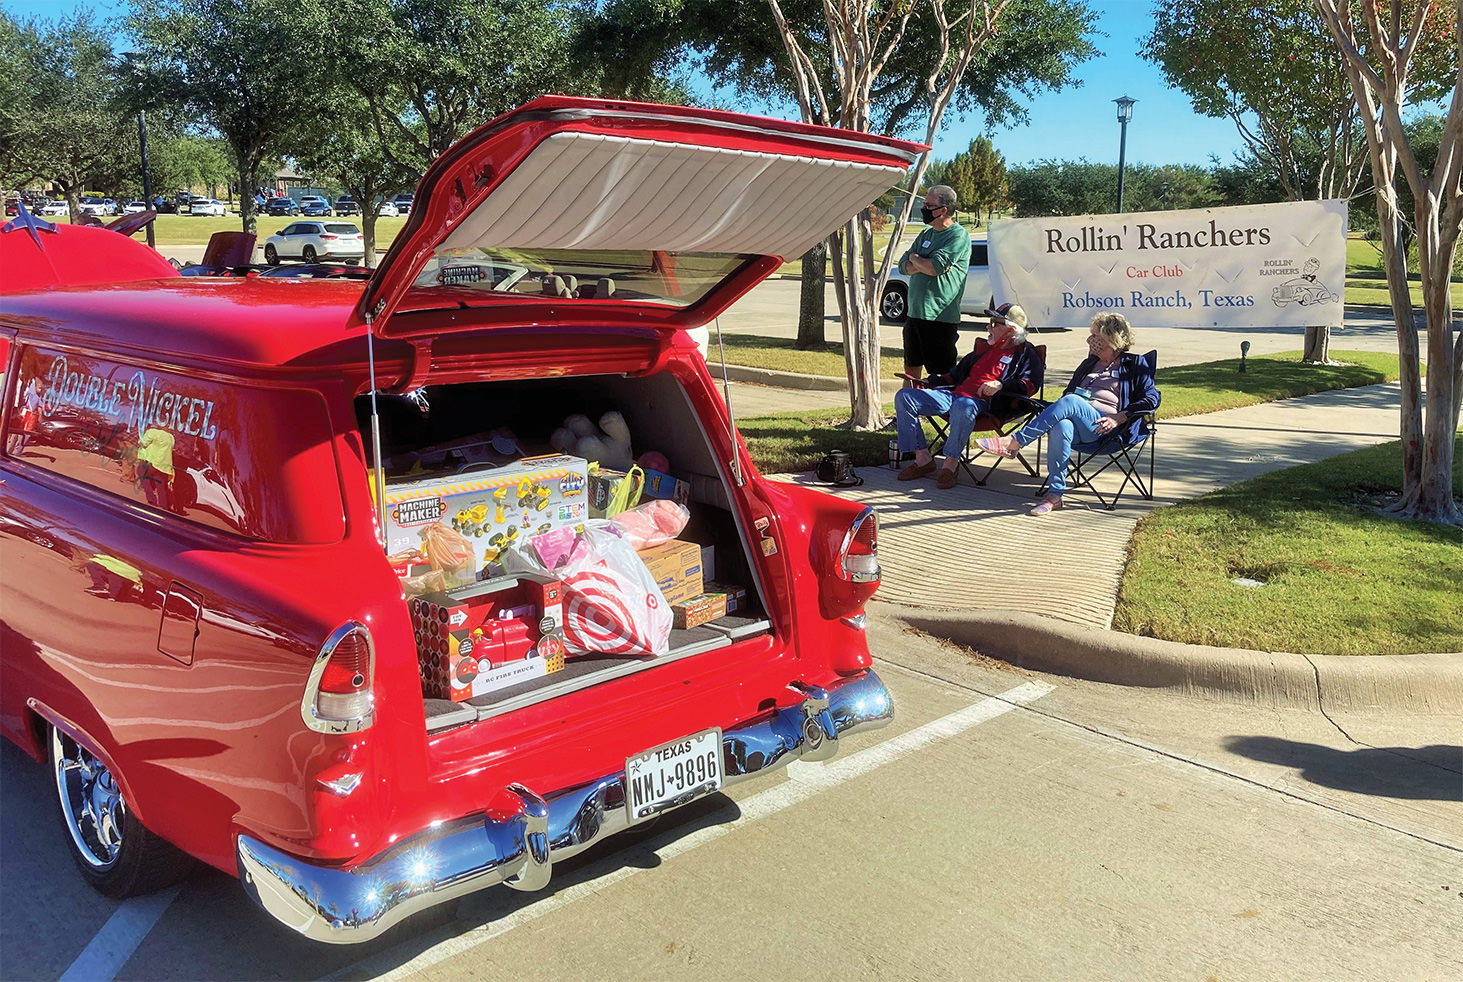 Chevy Street Rod filling up with toys